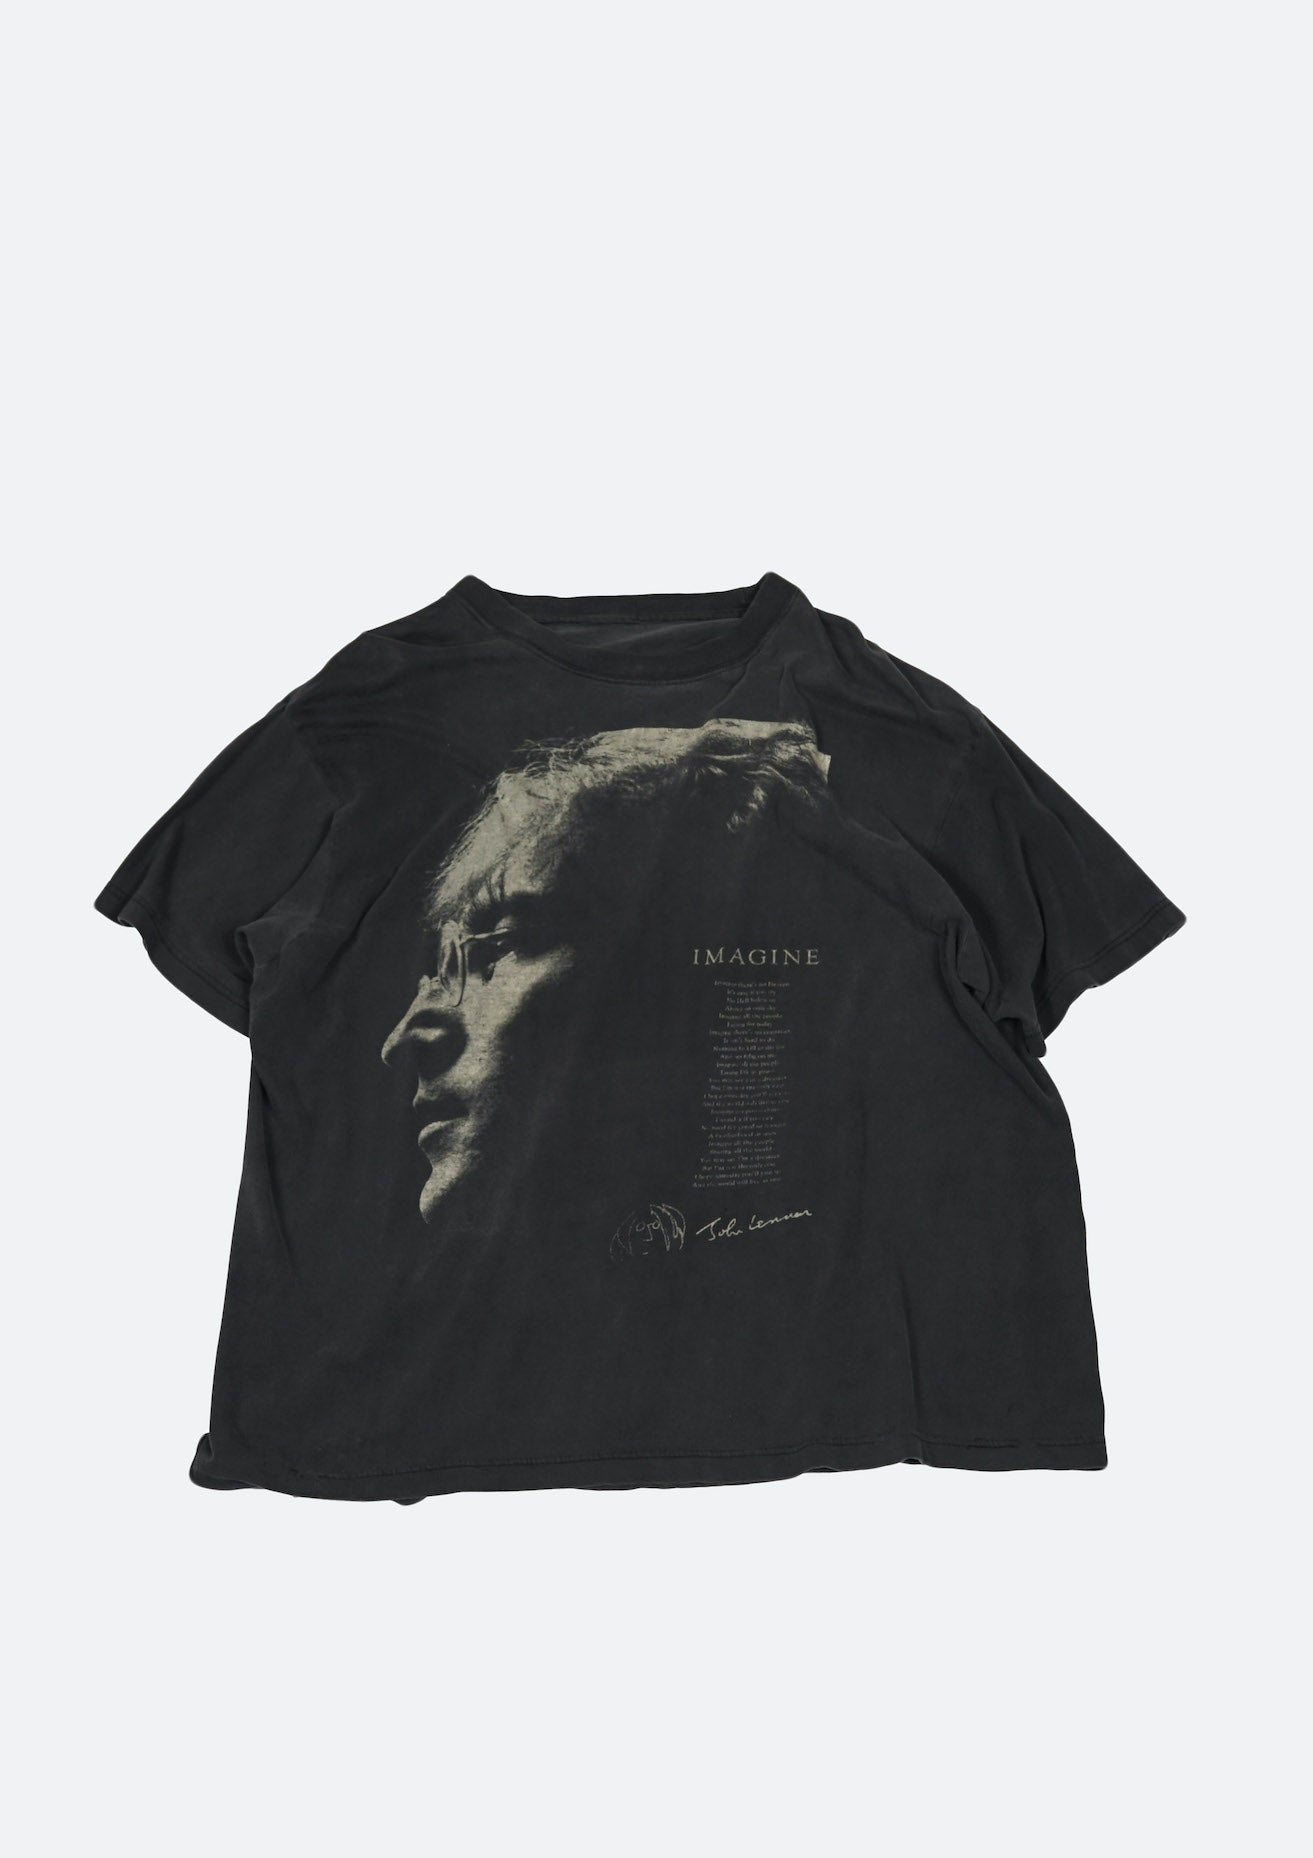 John Lennon Imagine Tee